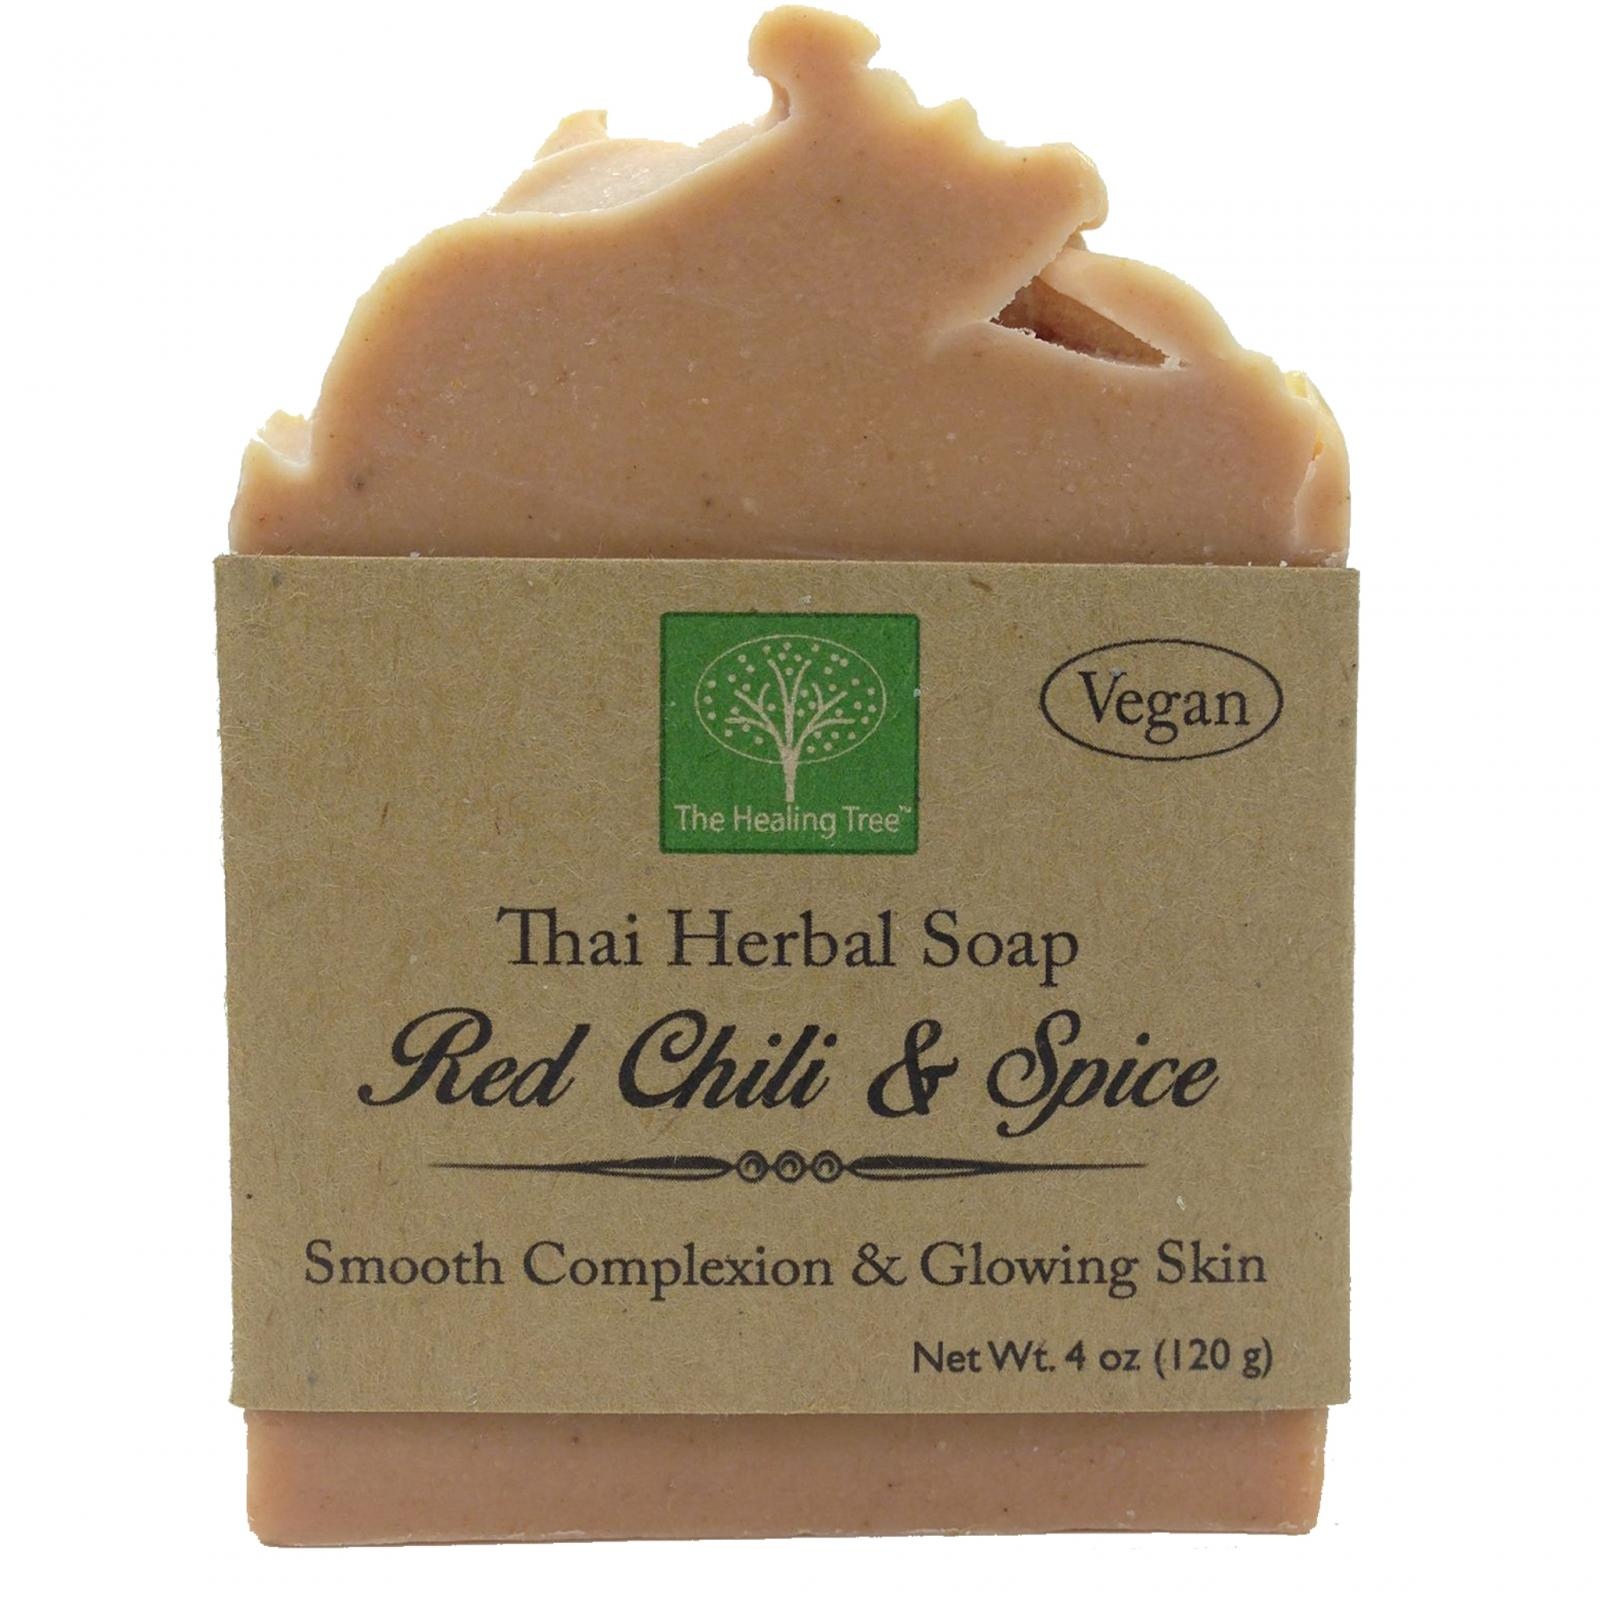 Red Chili & Spice Handmade Soap for Smooth Complexion & Glowing Skin